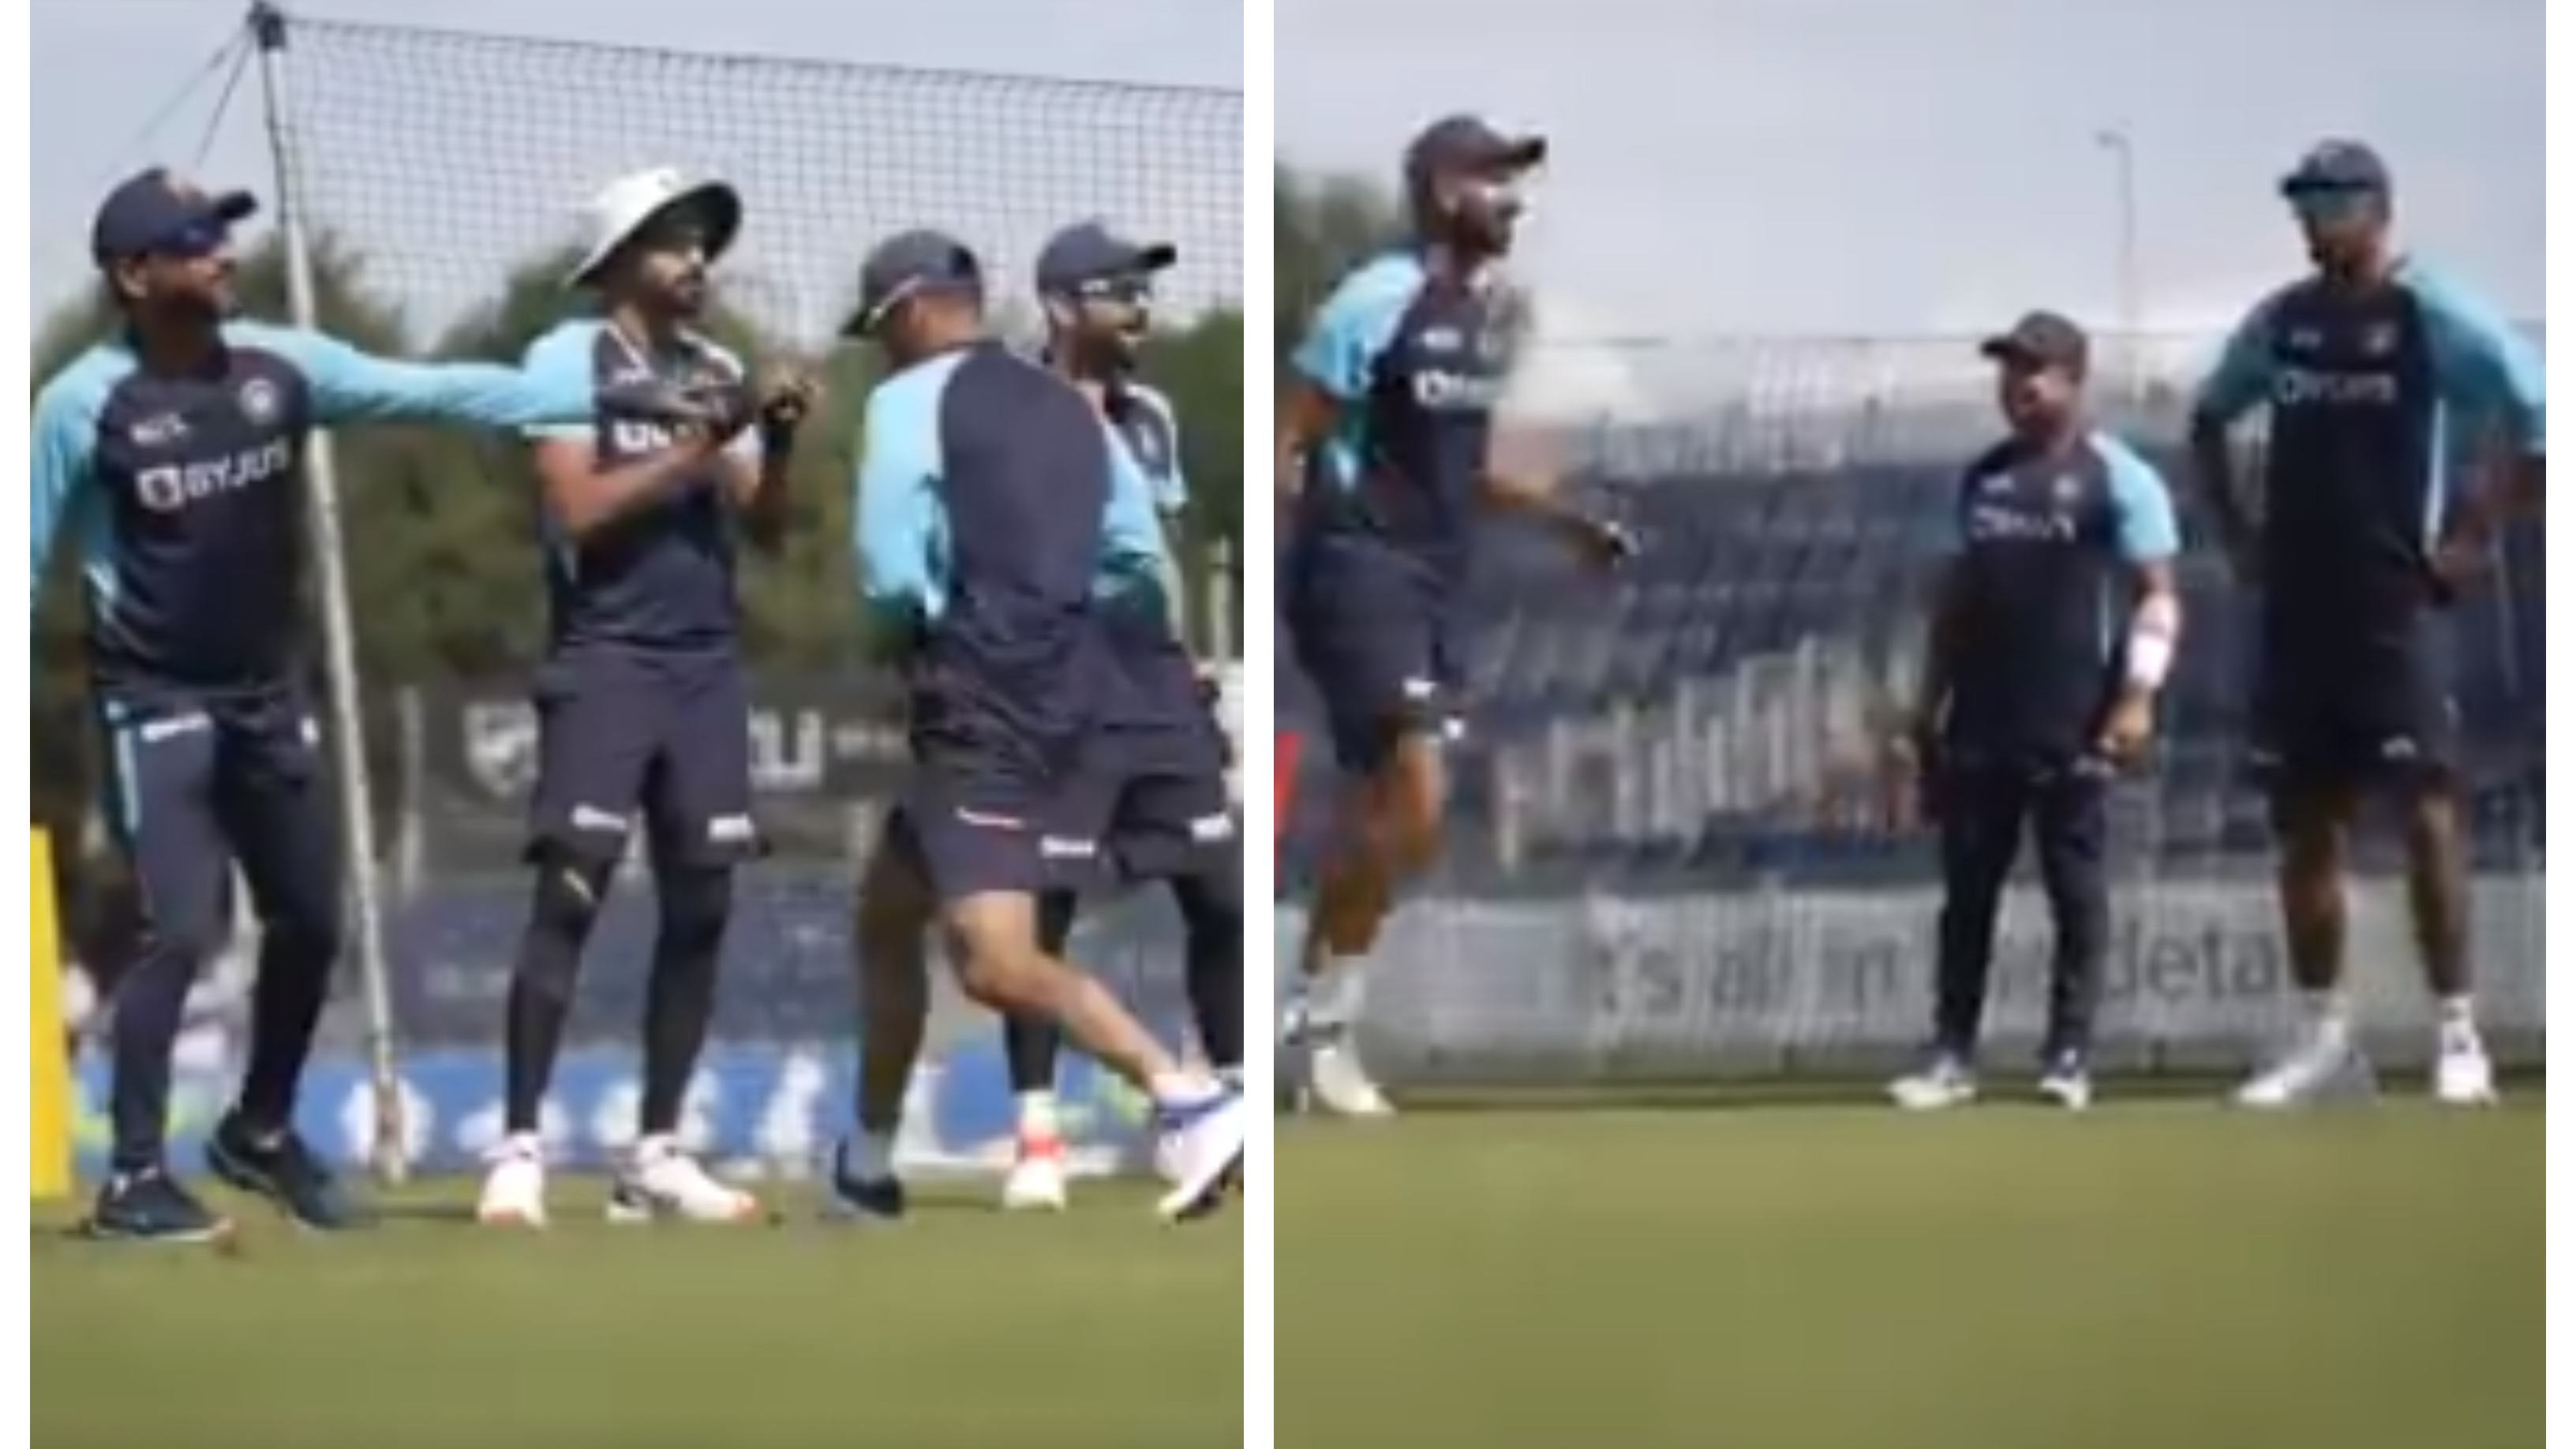 ENG v IND 2021: WATCH – Team India's entertaining fielding drill with competition between Team Kohli & Team Ashwin